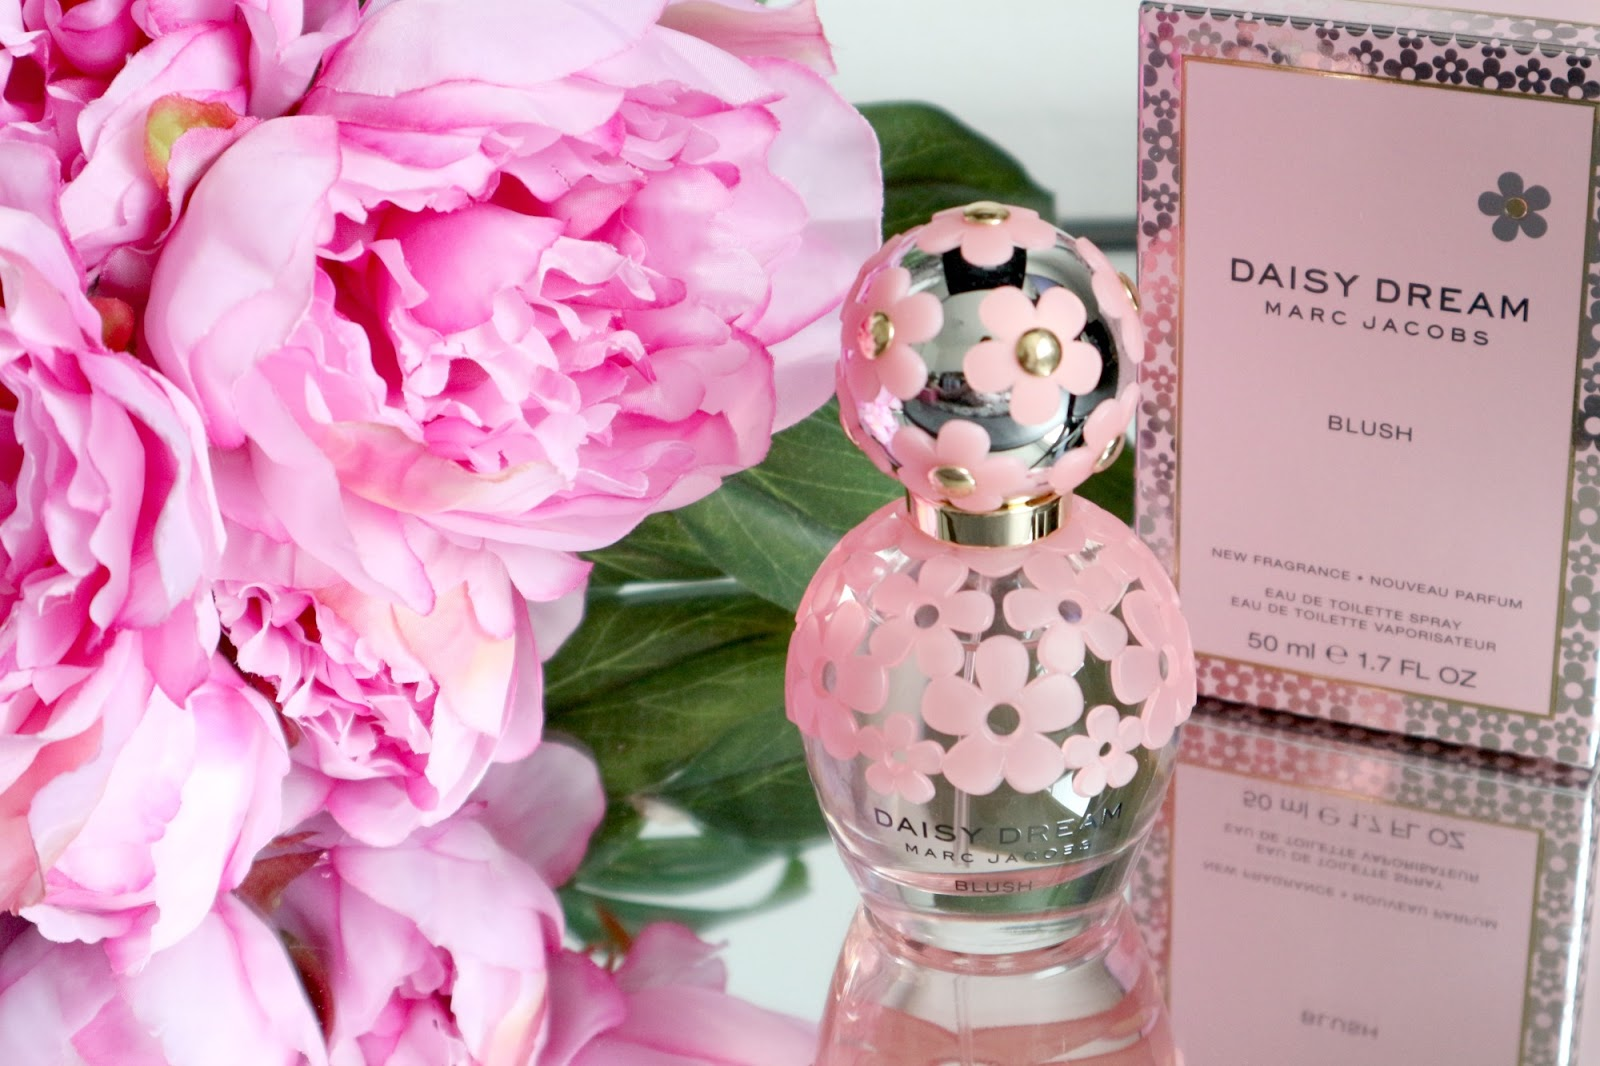 Marc Jacobs Daisy Dream Blush Review